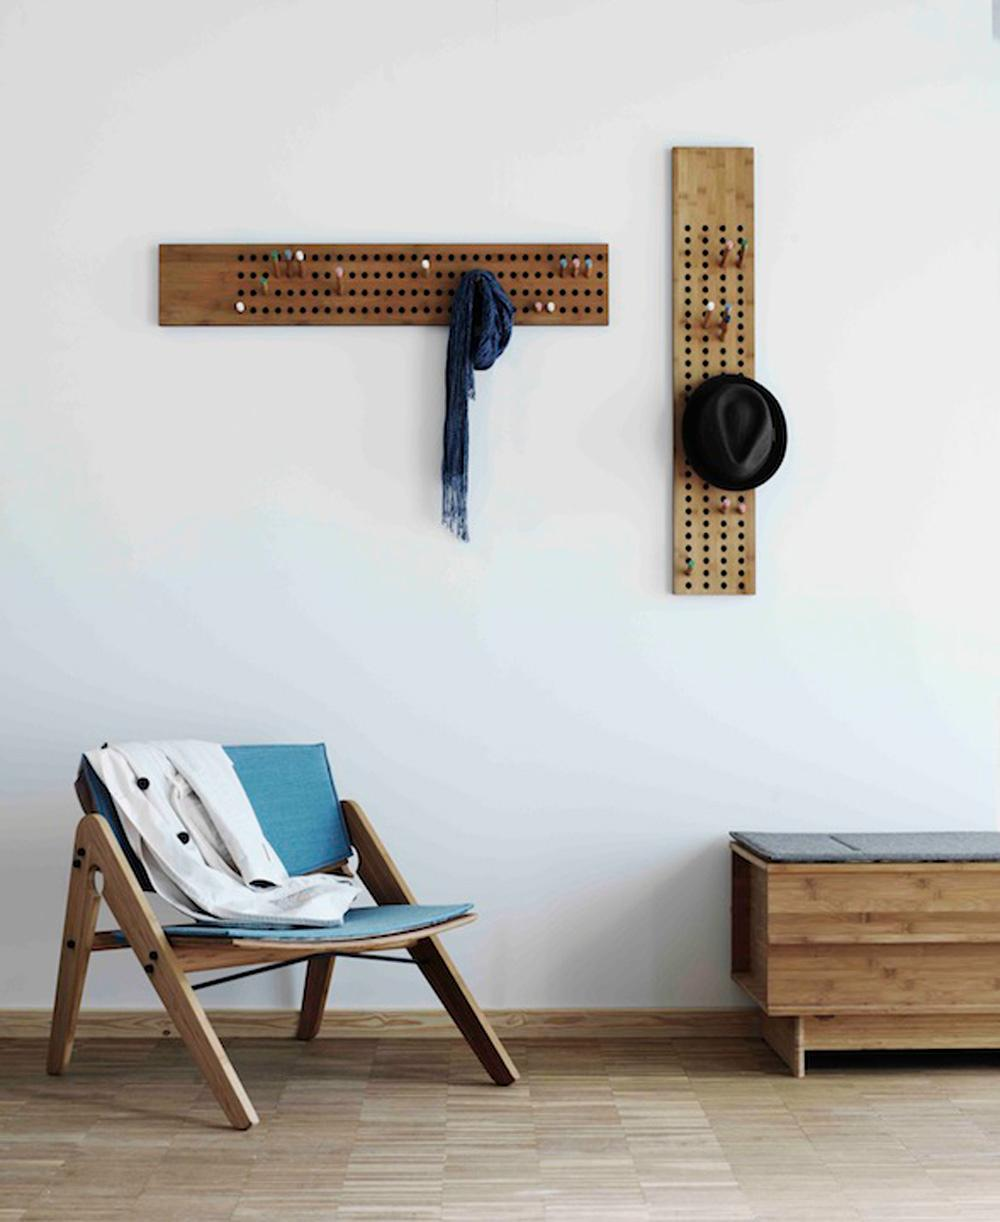 stilvolle Designer Garderobe SCOREBOARD #garderobe #hakenleiste ©We Do Wood